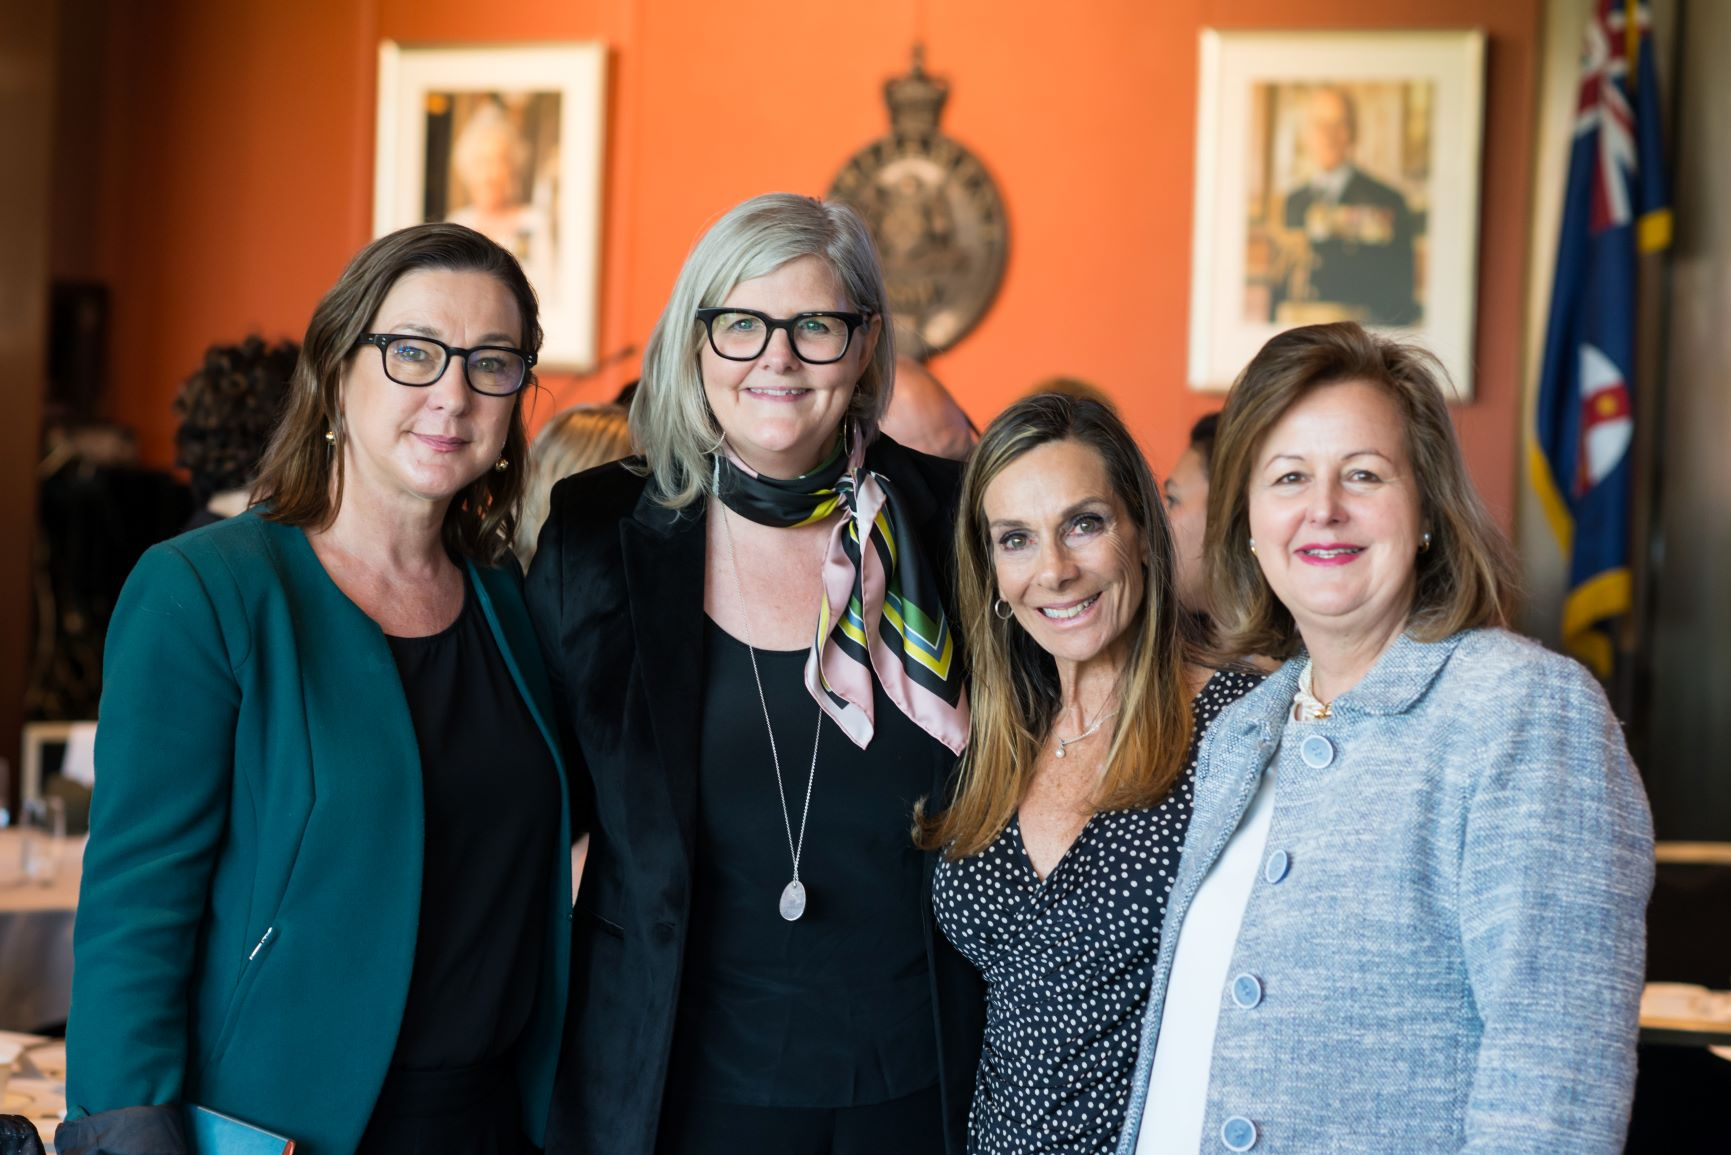 Sam Mostyn, ANROWS, Lenore Taylor, Guardian Australia, Jane Jose, Dress for Success, Keeping Women Out of Prison, Sydney Women's Fund, Sydney Women's Charity